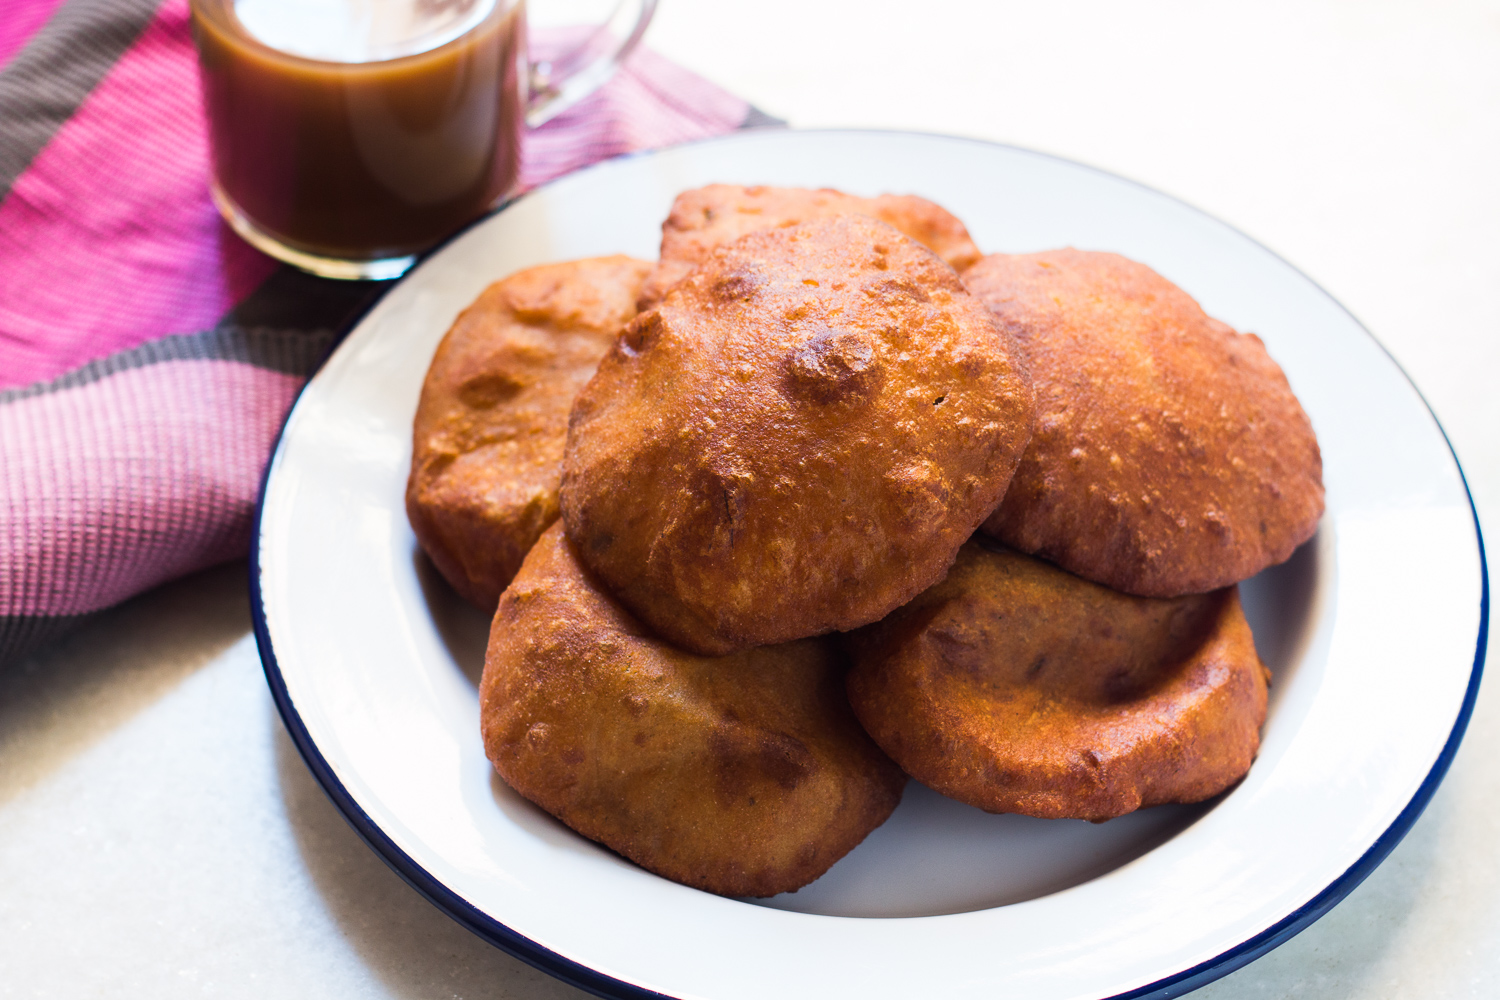 Mangalore Buns Recipe - Puffed Banana Puris